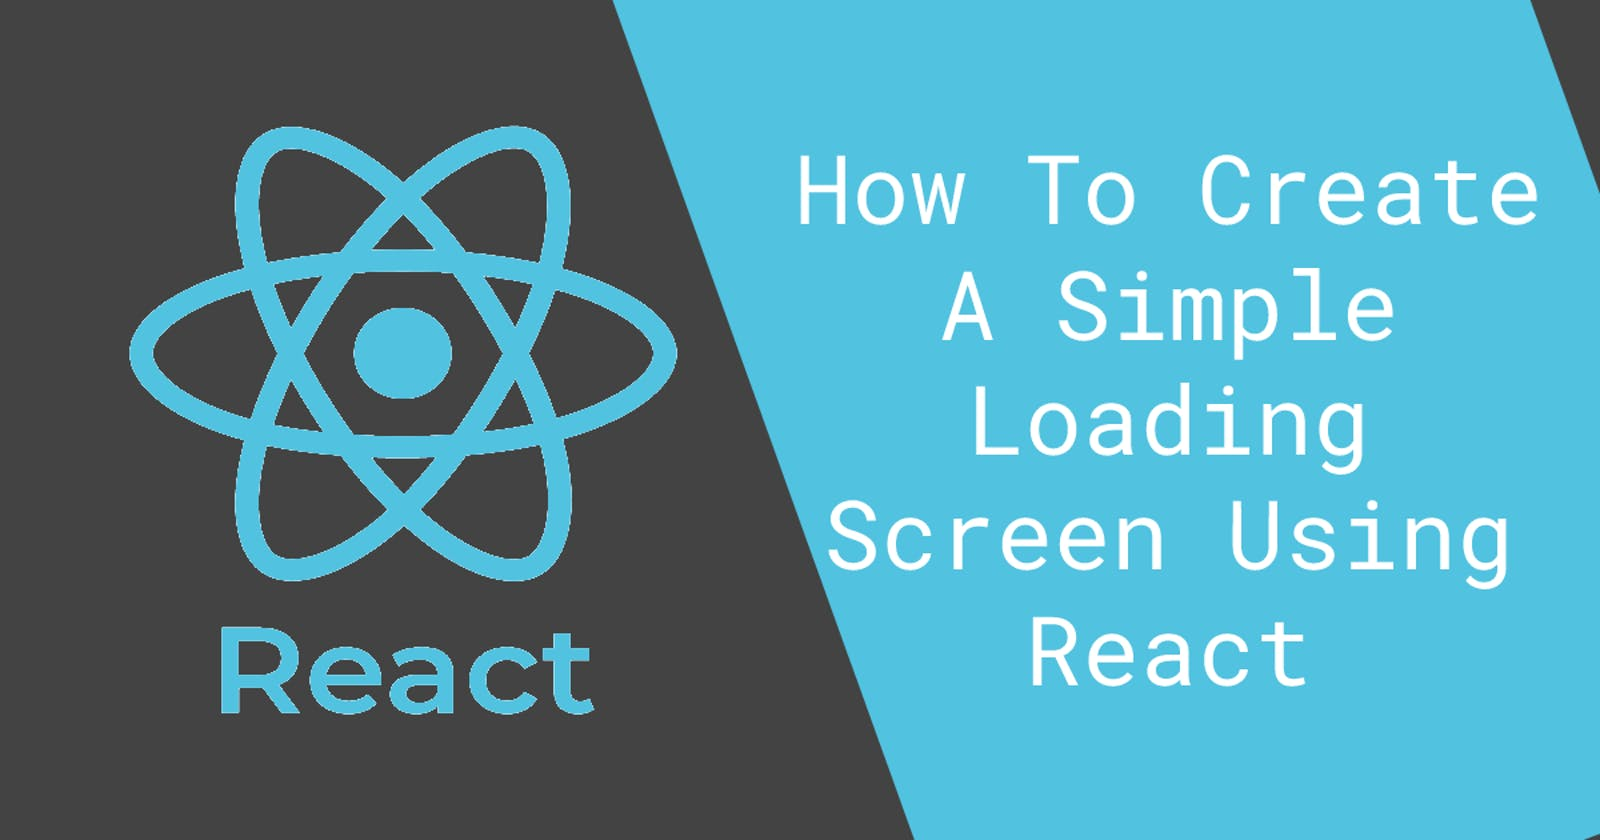 How To Create A Simple Loading Screen Using React